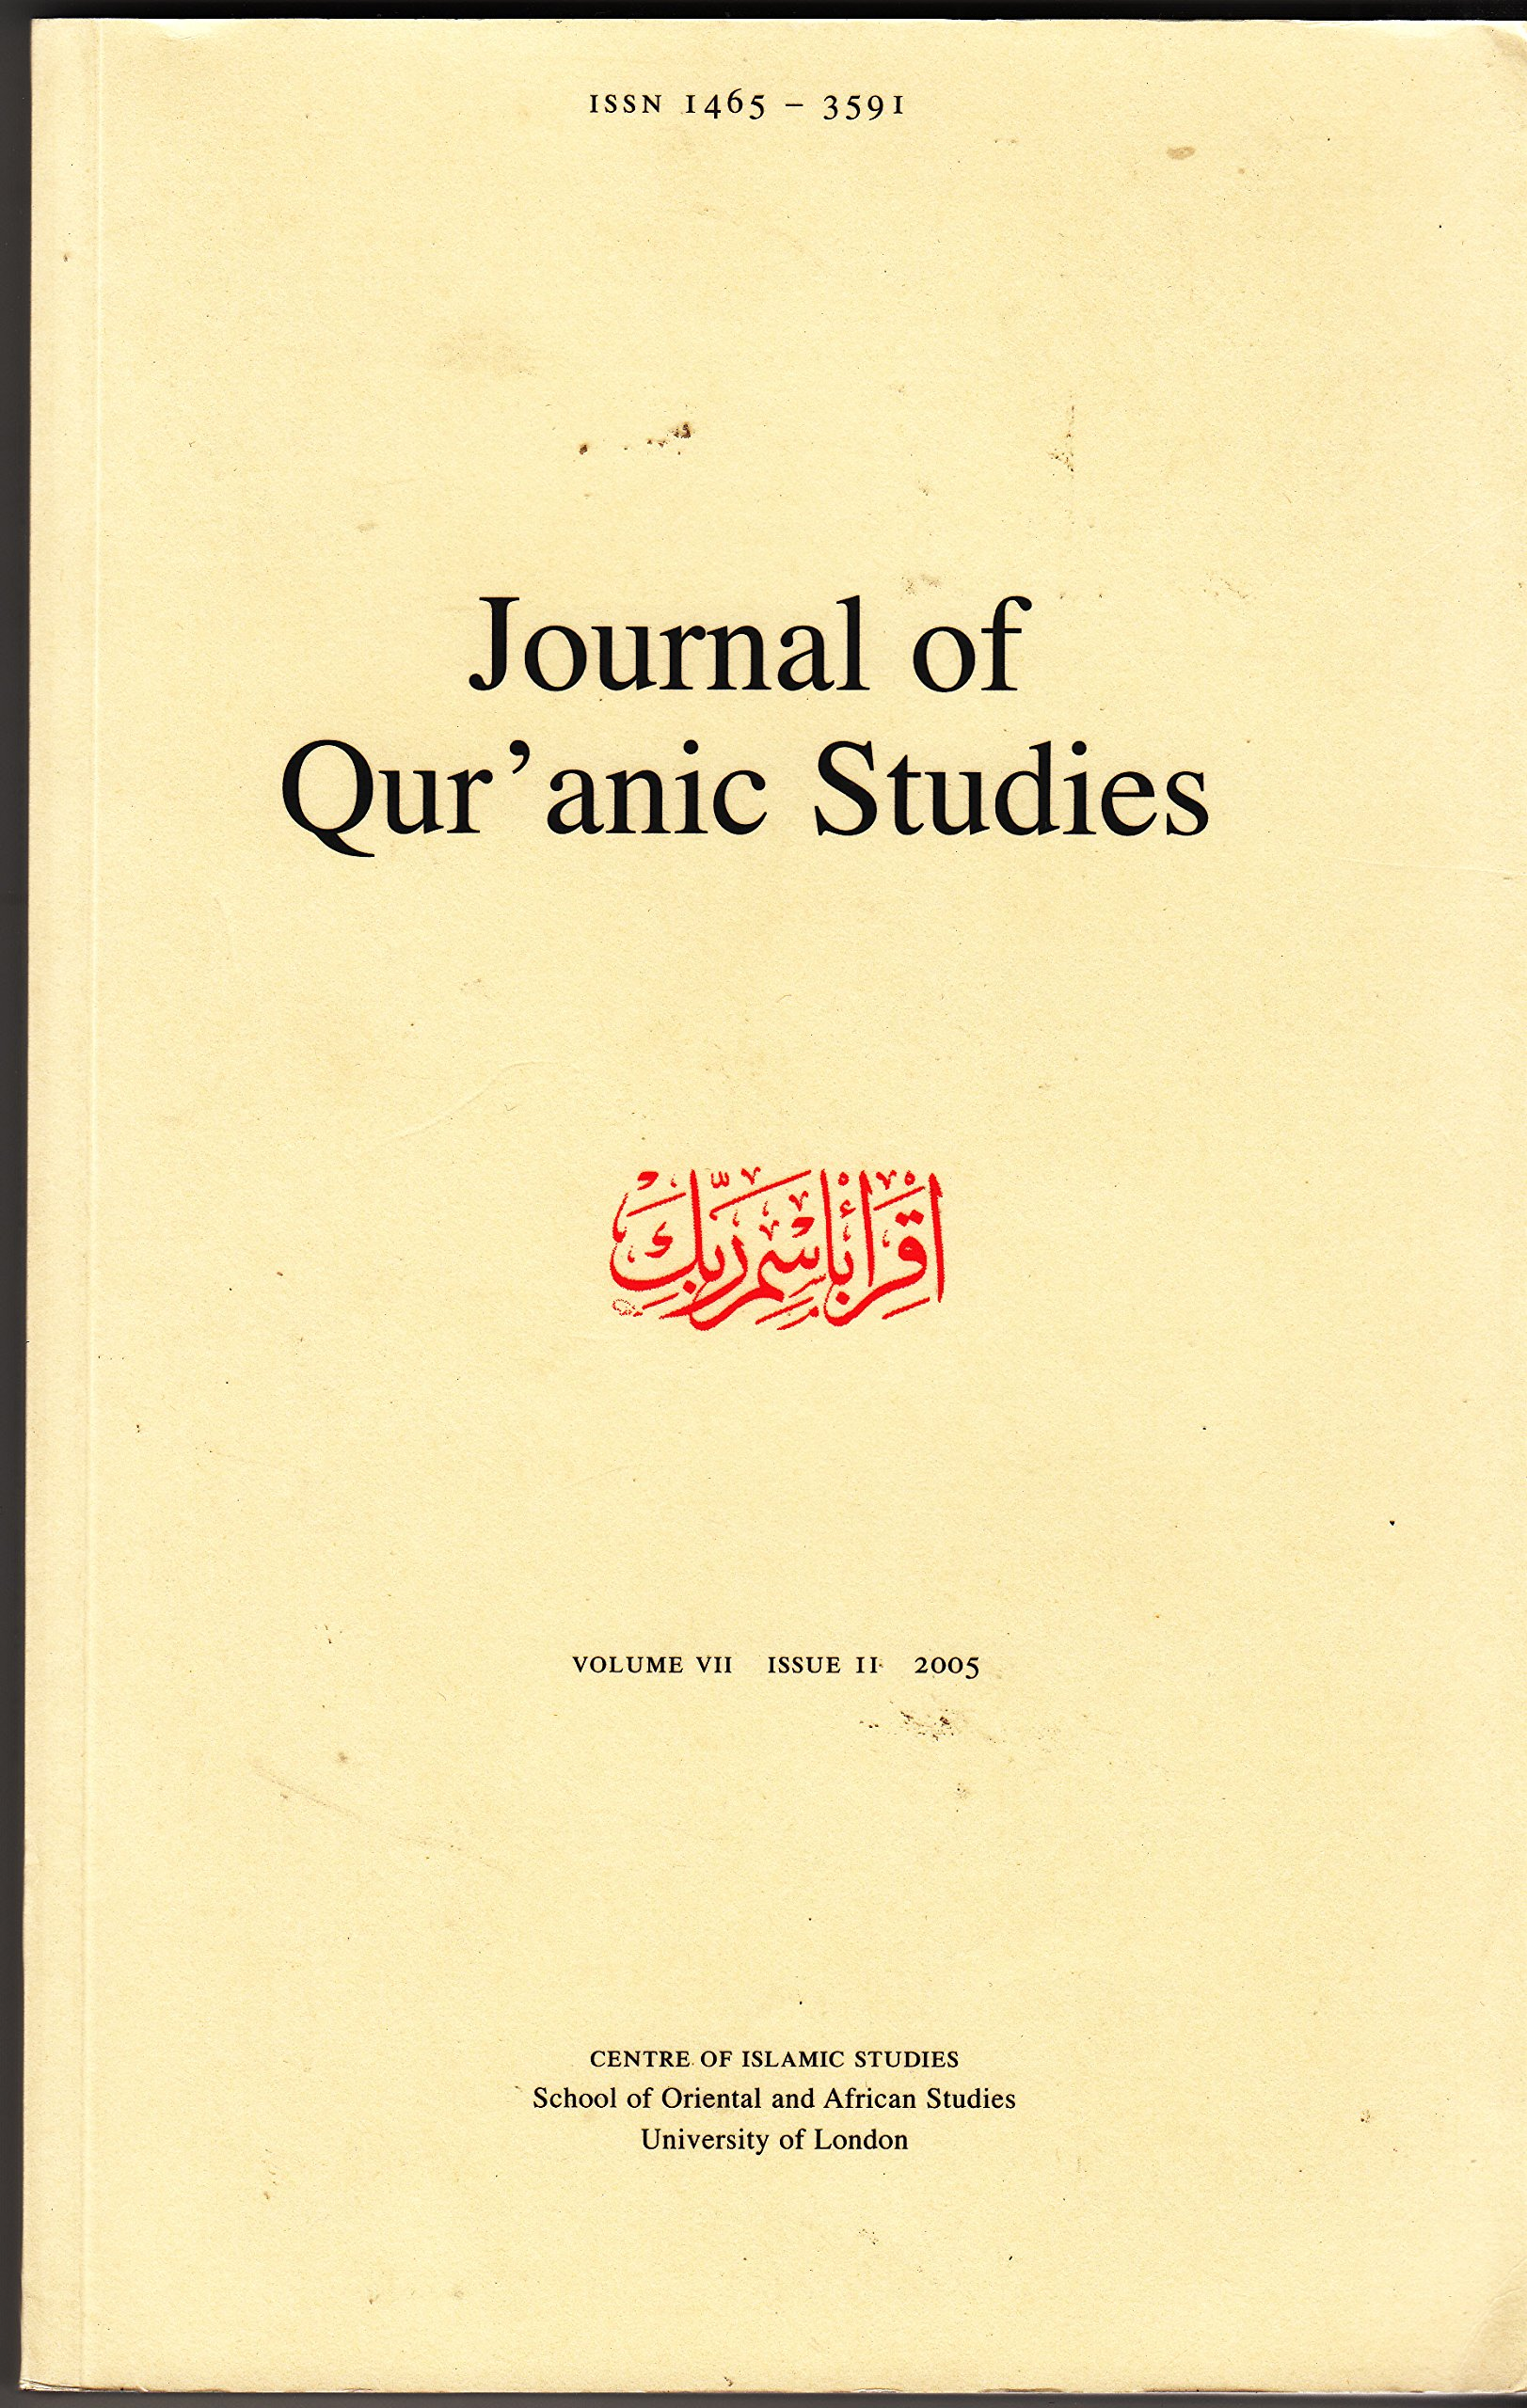 Cover for the Journal of Qur'anic Studies